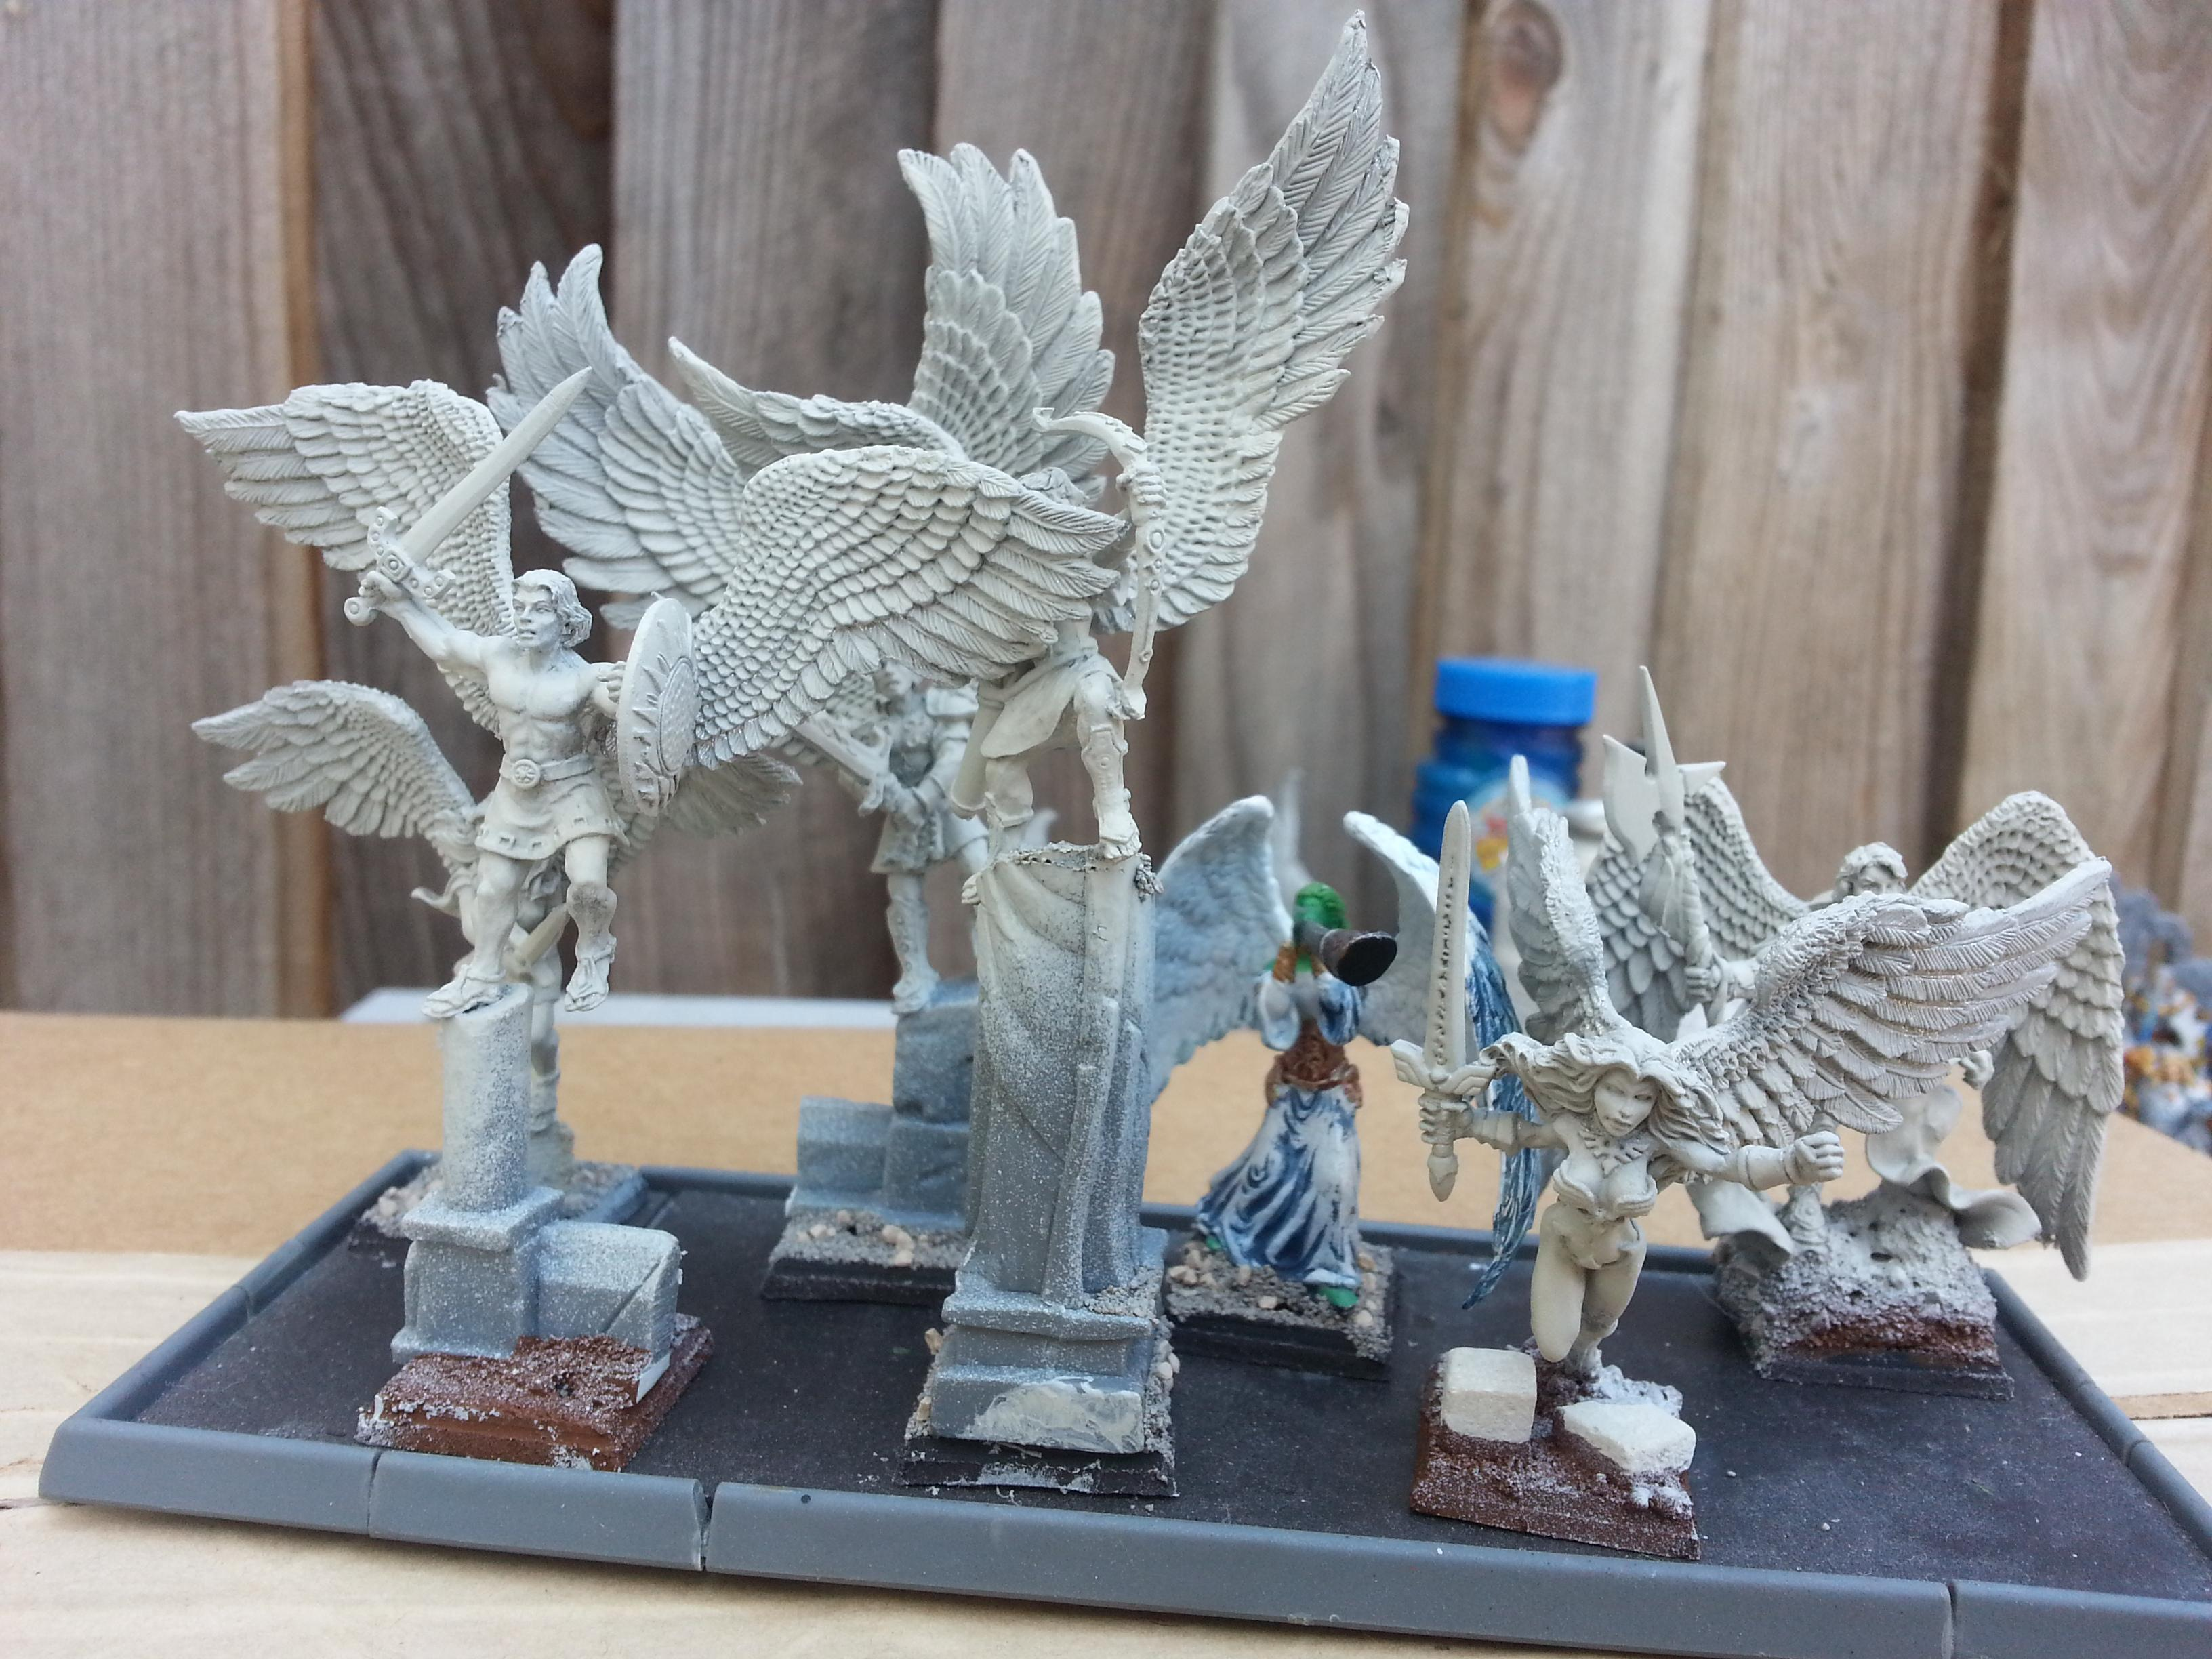 Angel, Chaos Warrior, Reaper, Warhammer Fantasy, Warriors Of Light